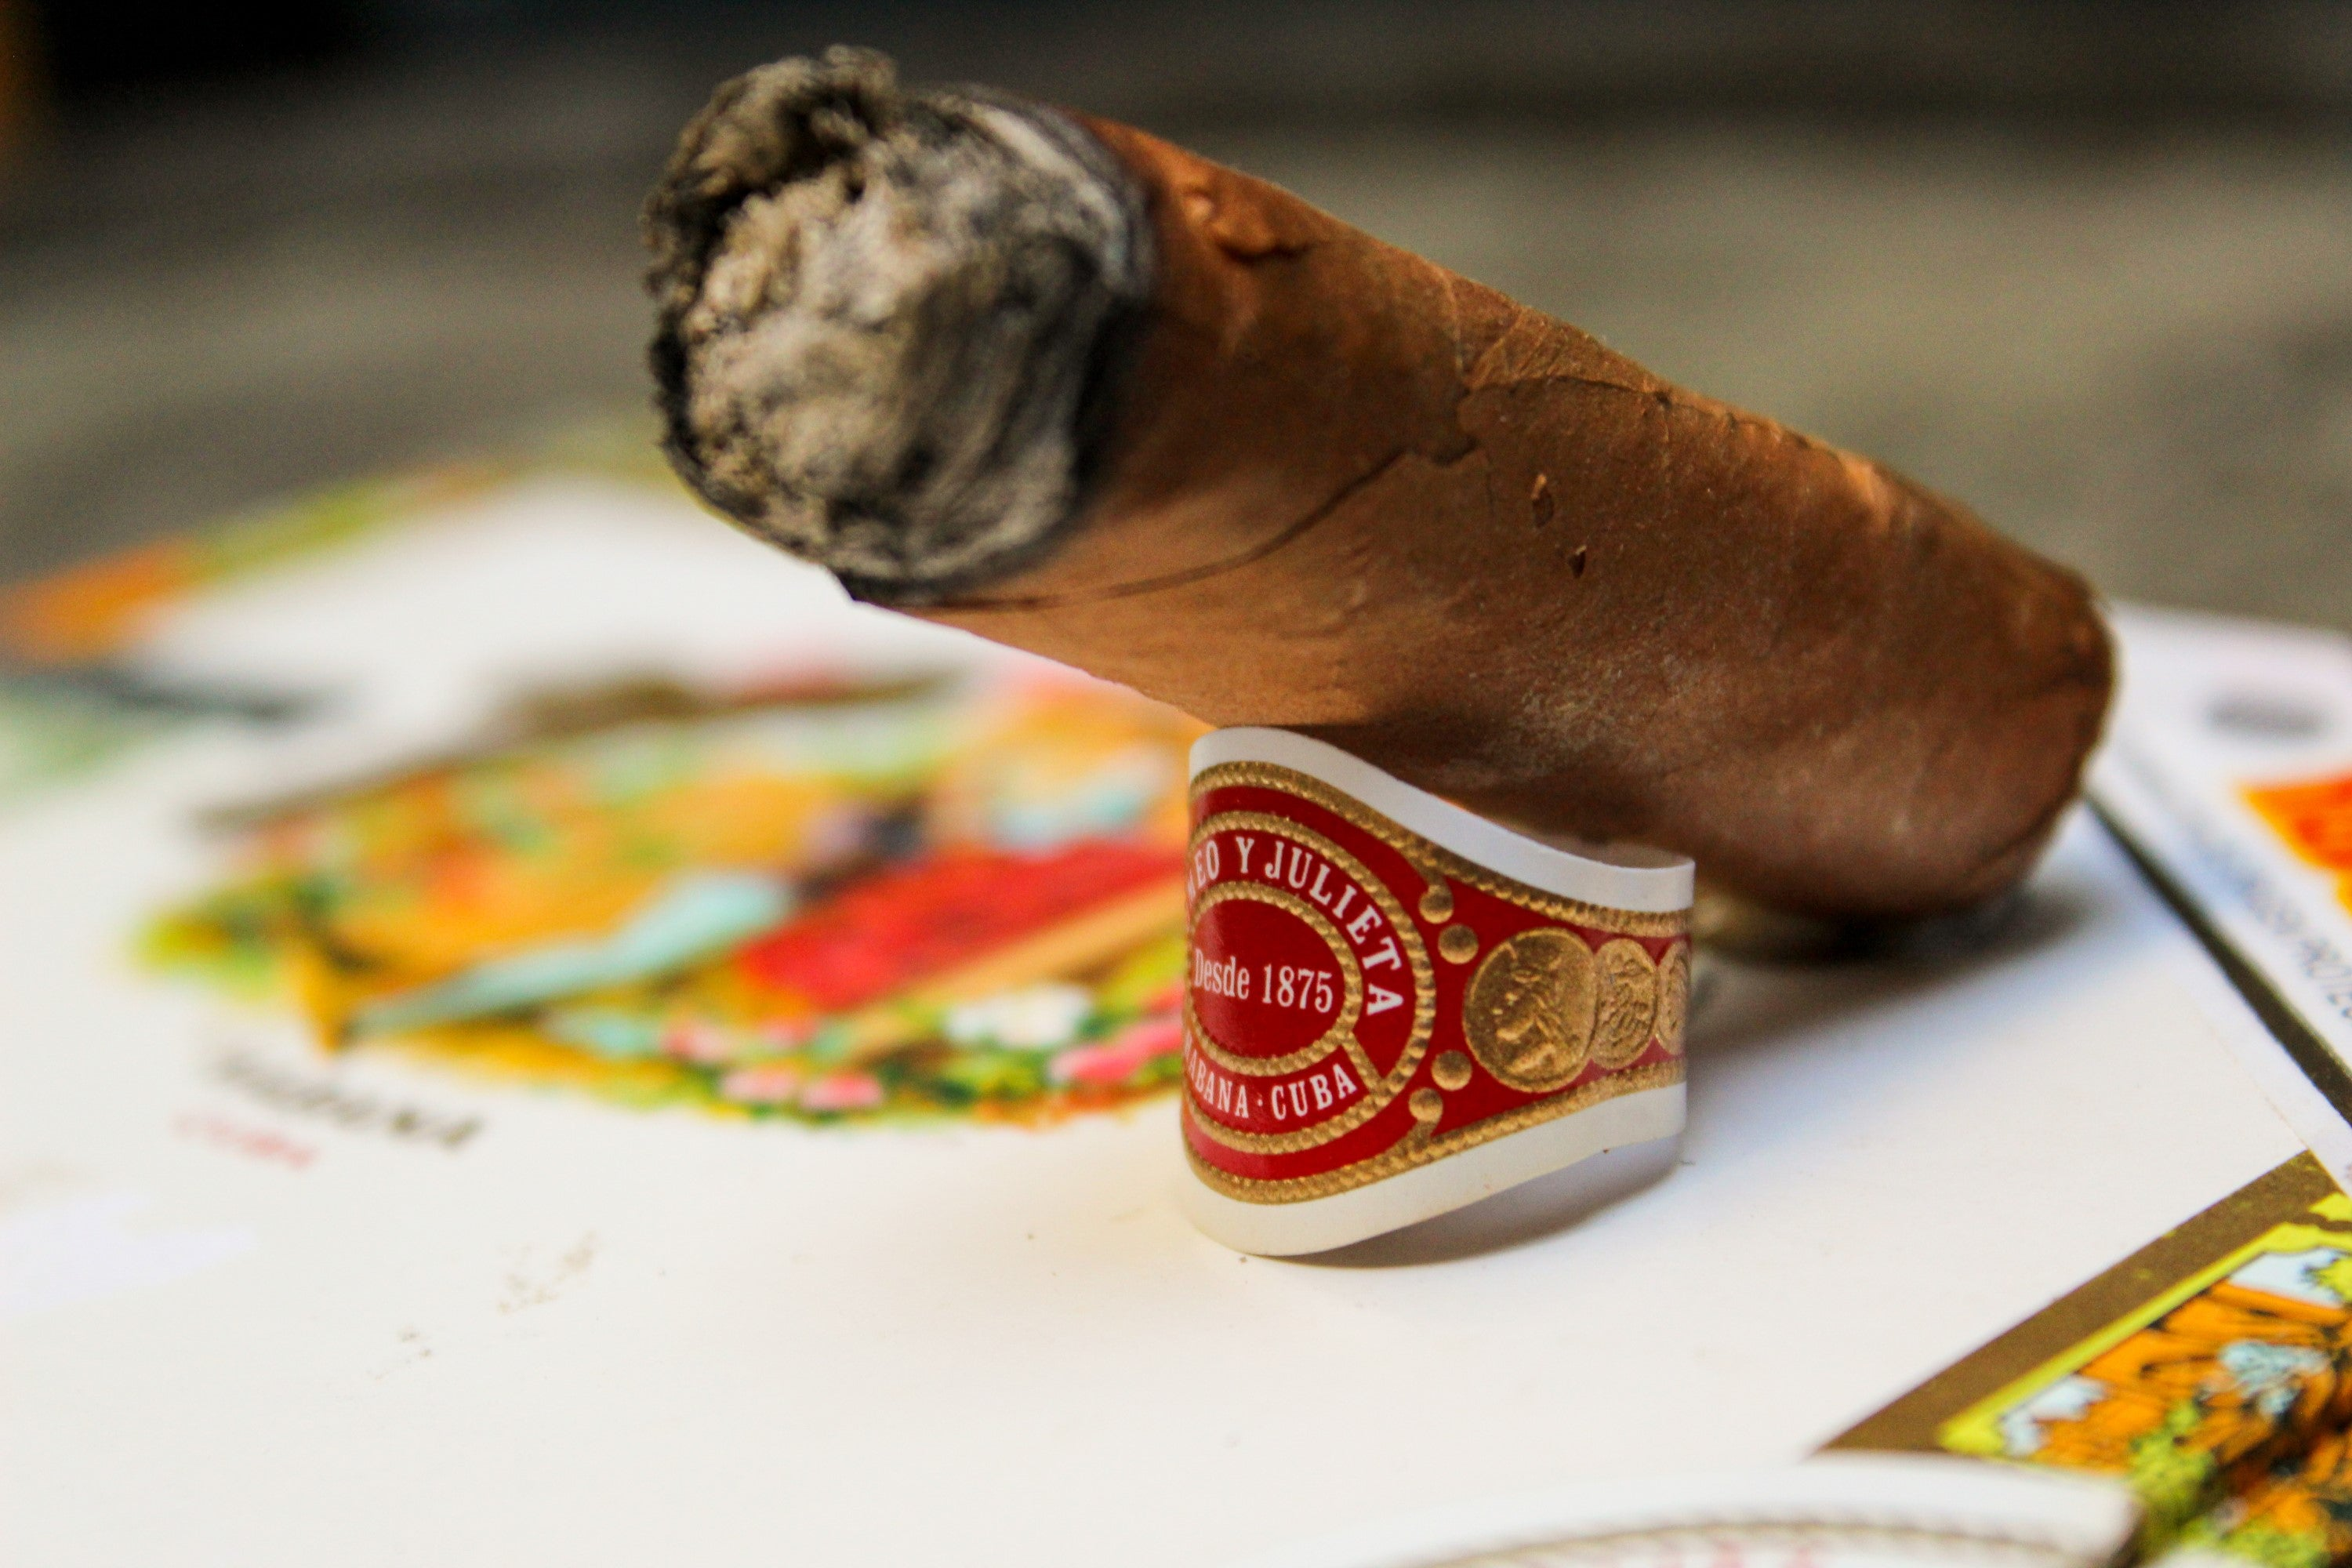 The end of the Romeo y Julieta Mille Fleurs